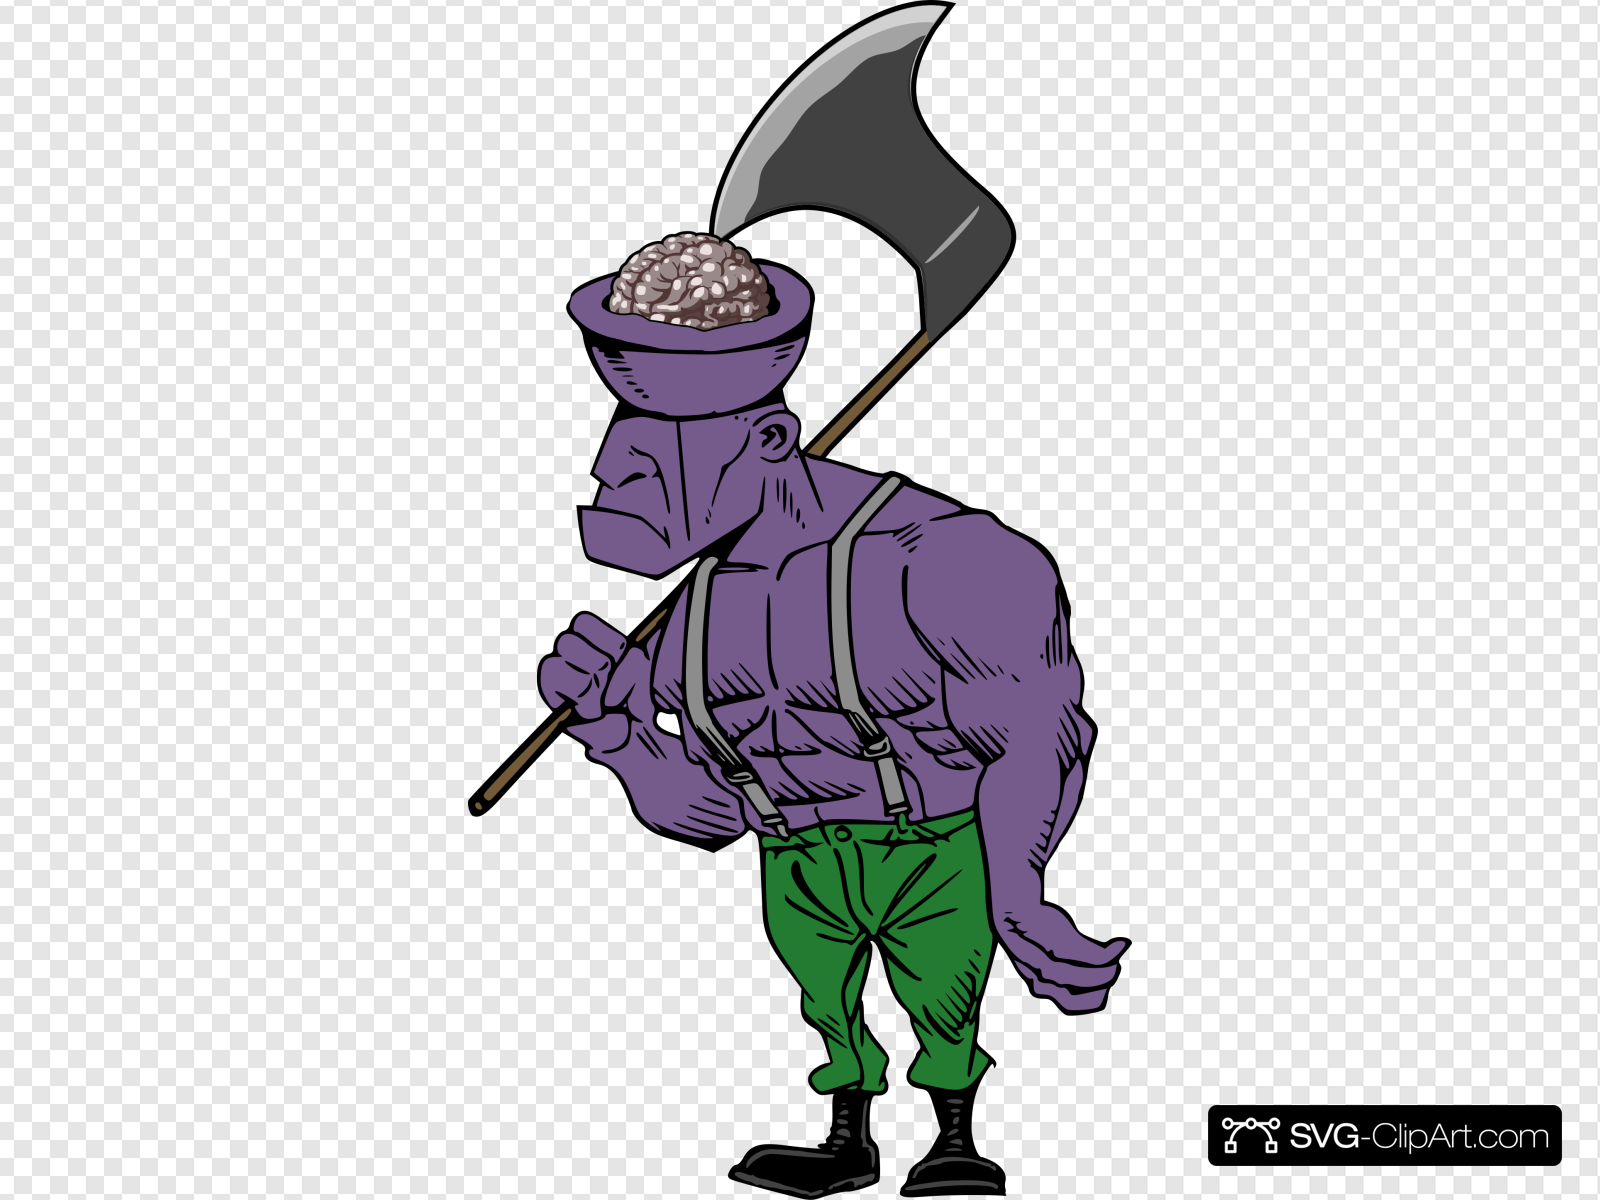 Exposed Brain Zombie Clip art, Icon and SVG.